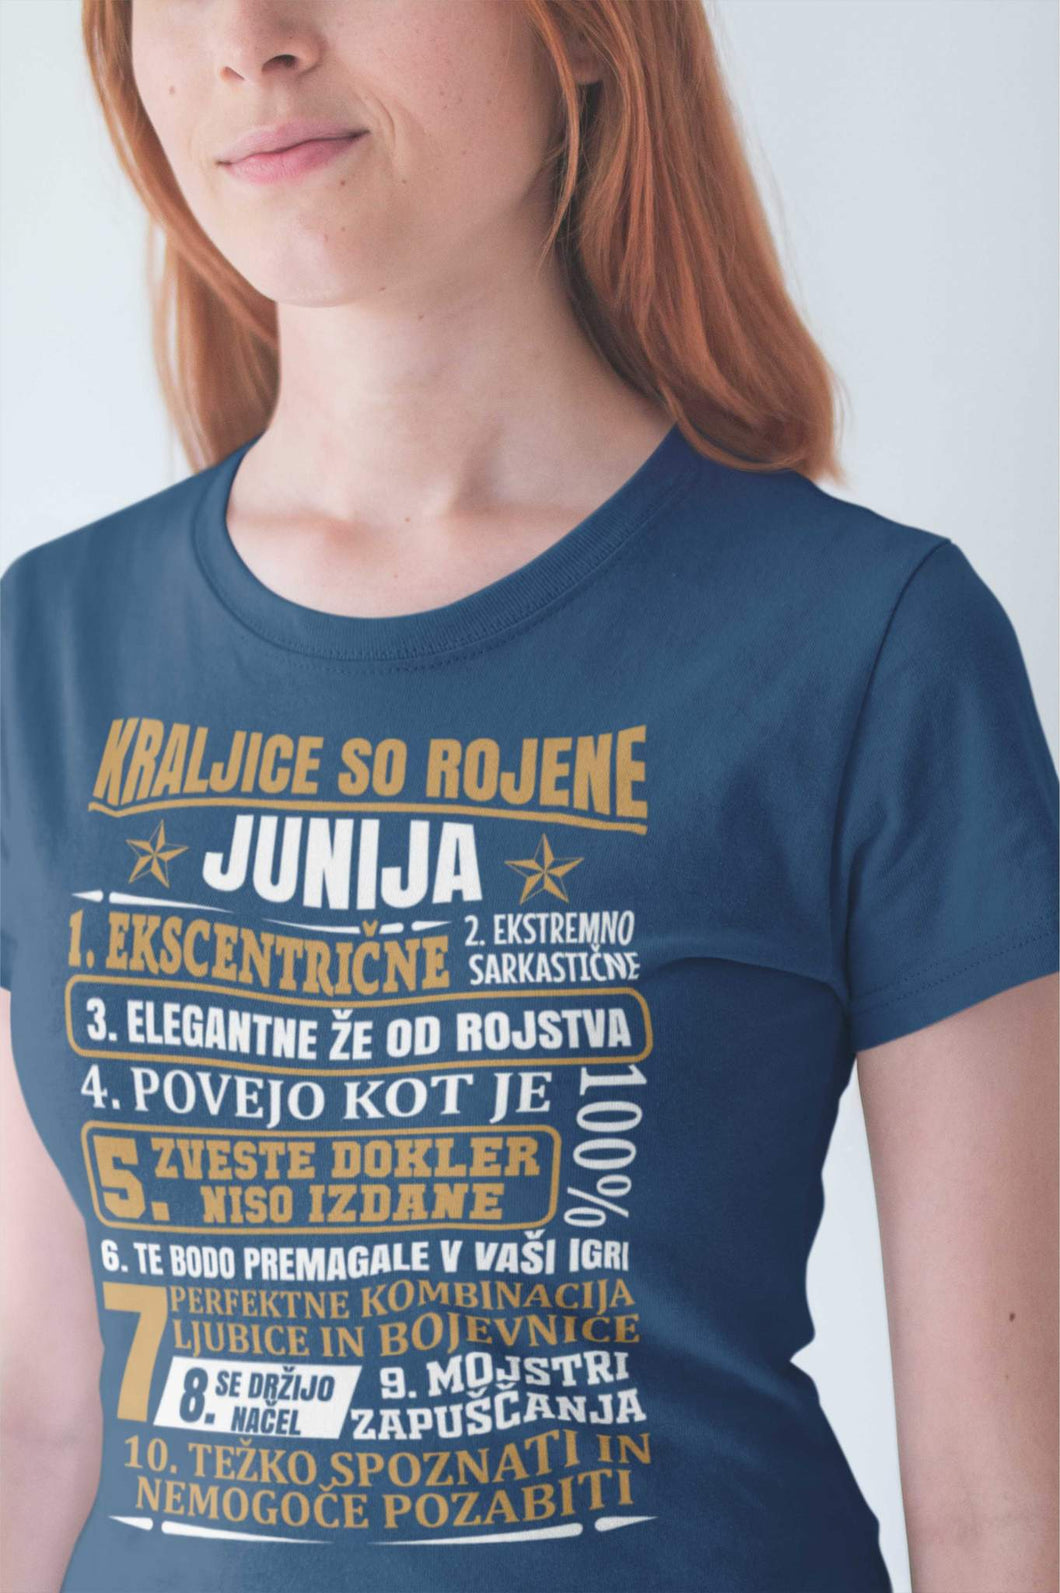 Outlet Majica Kraljice So Rojene Junija